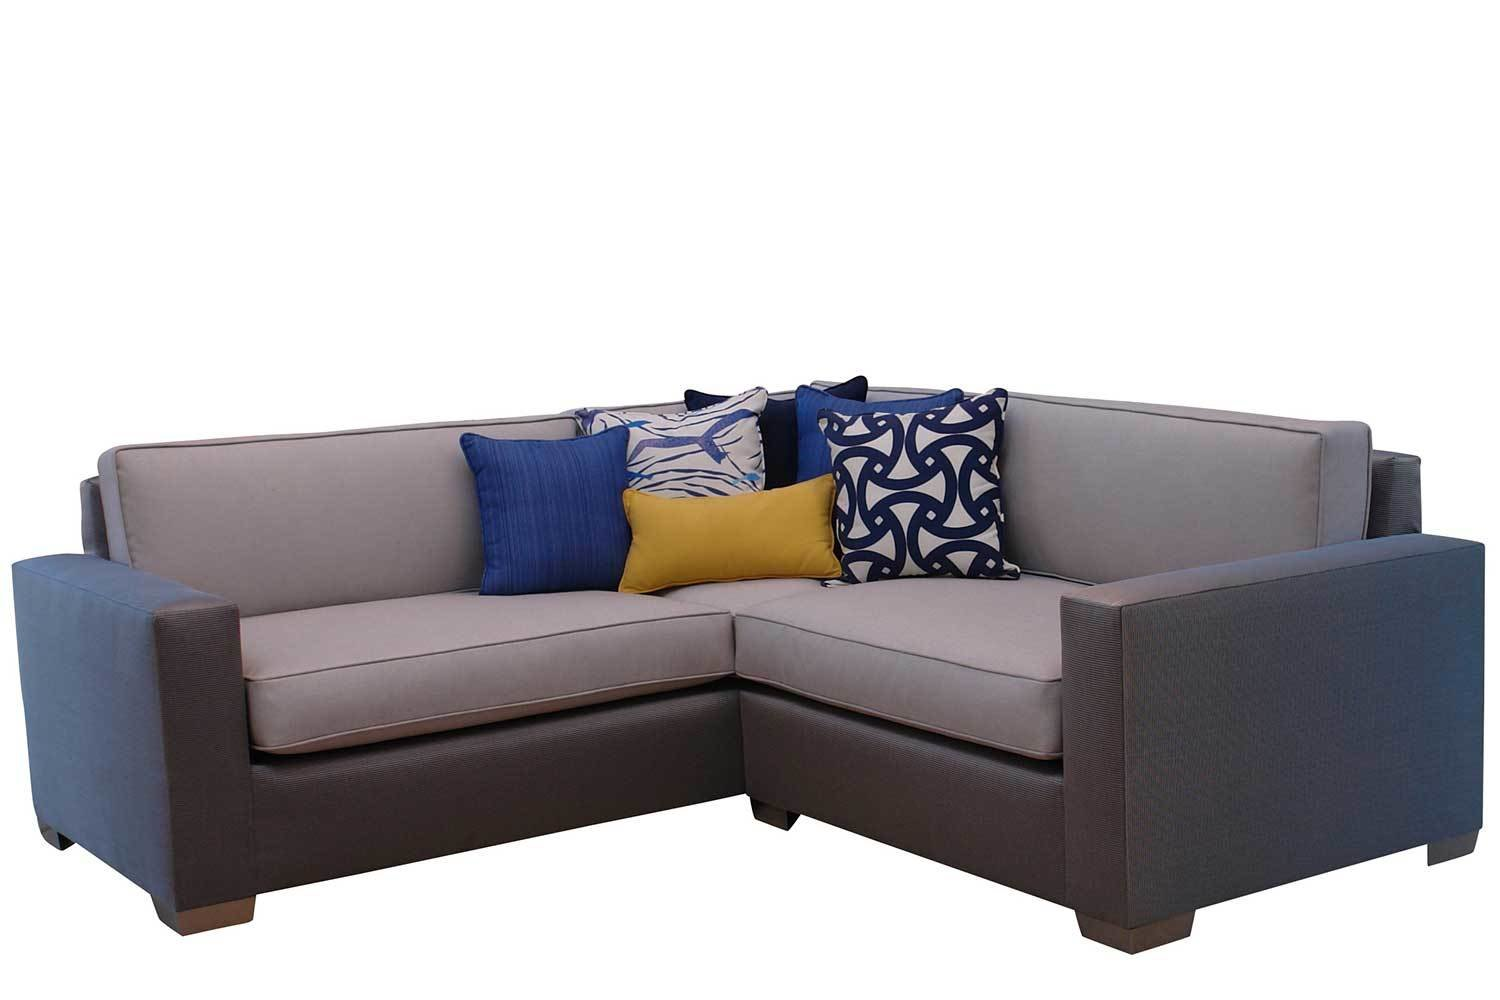 Apartment Size Sectional | Shop Furniture | Somers Furniture